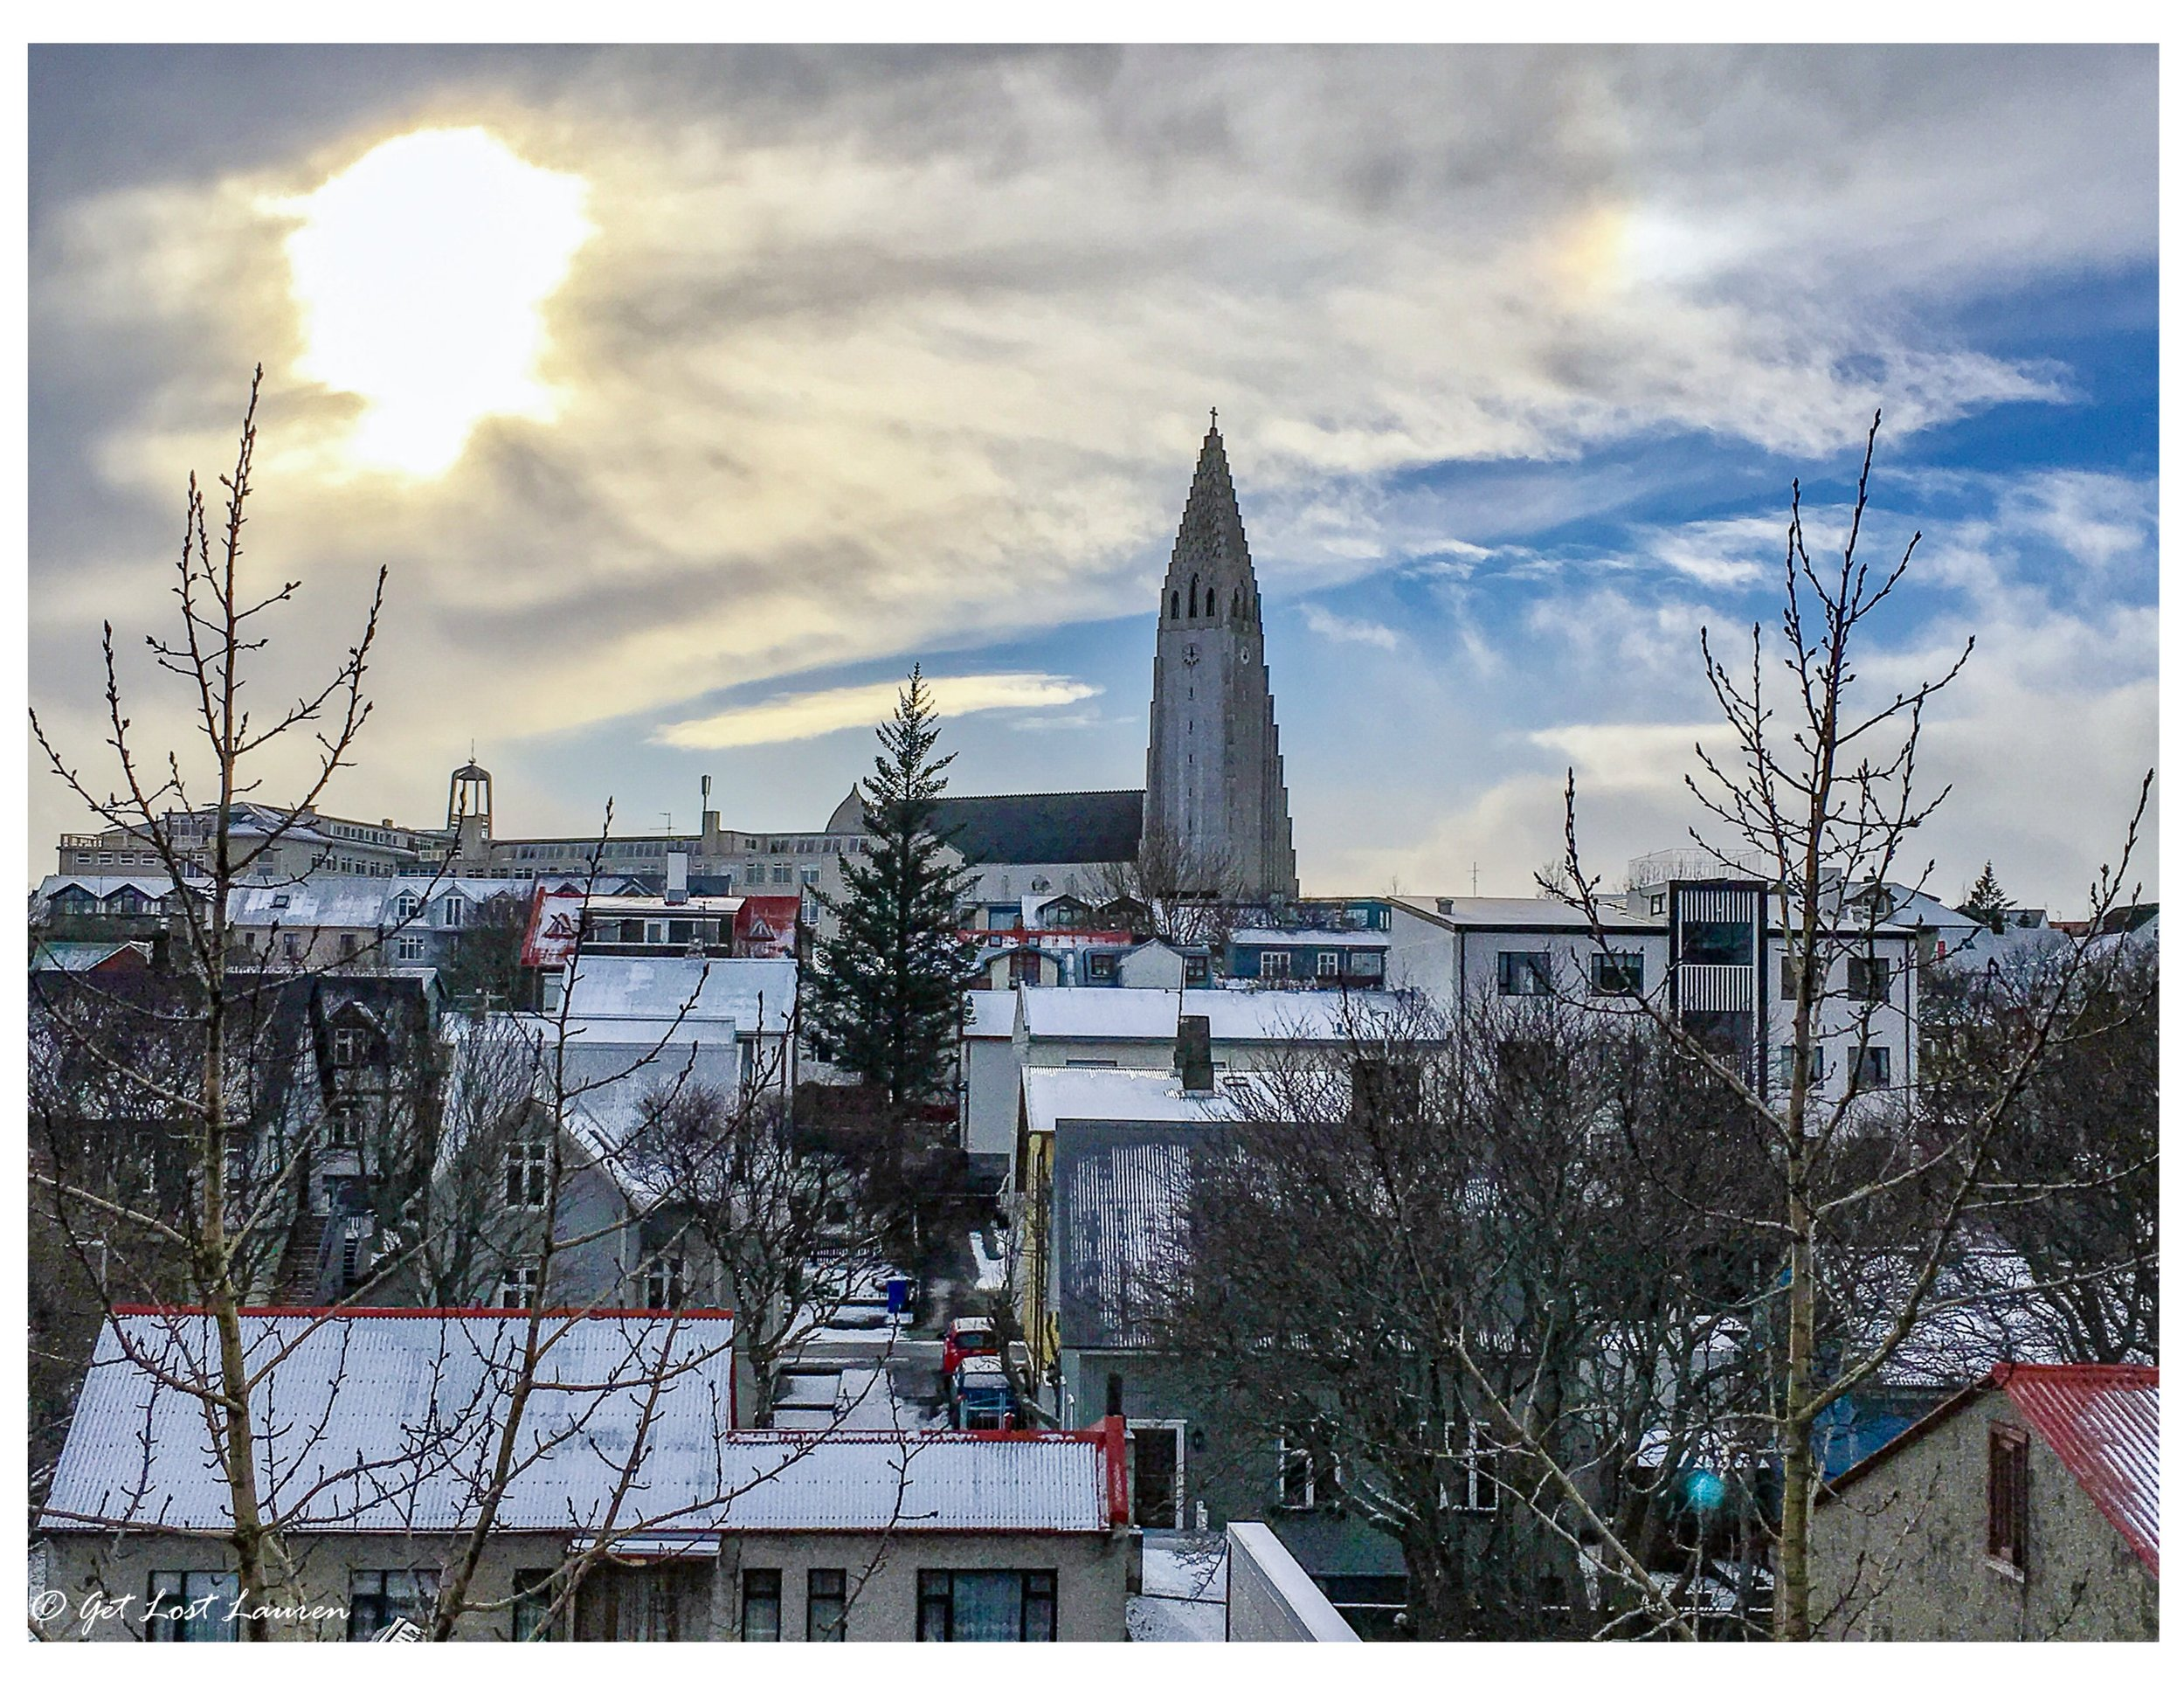 View of Hallgrímskirkja church in Reykjavik the day of our arrival from our penthouse apartment rental.